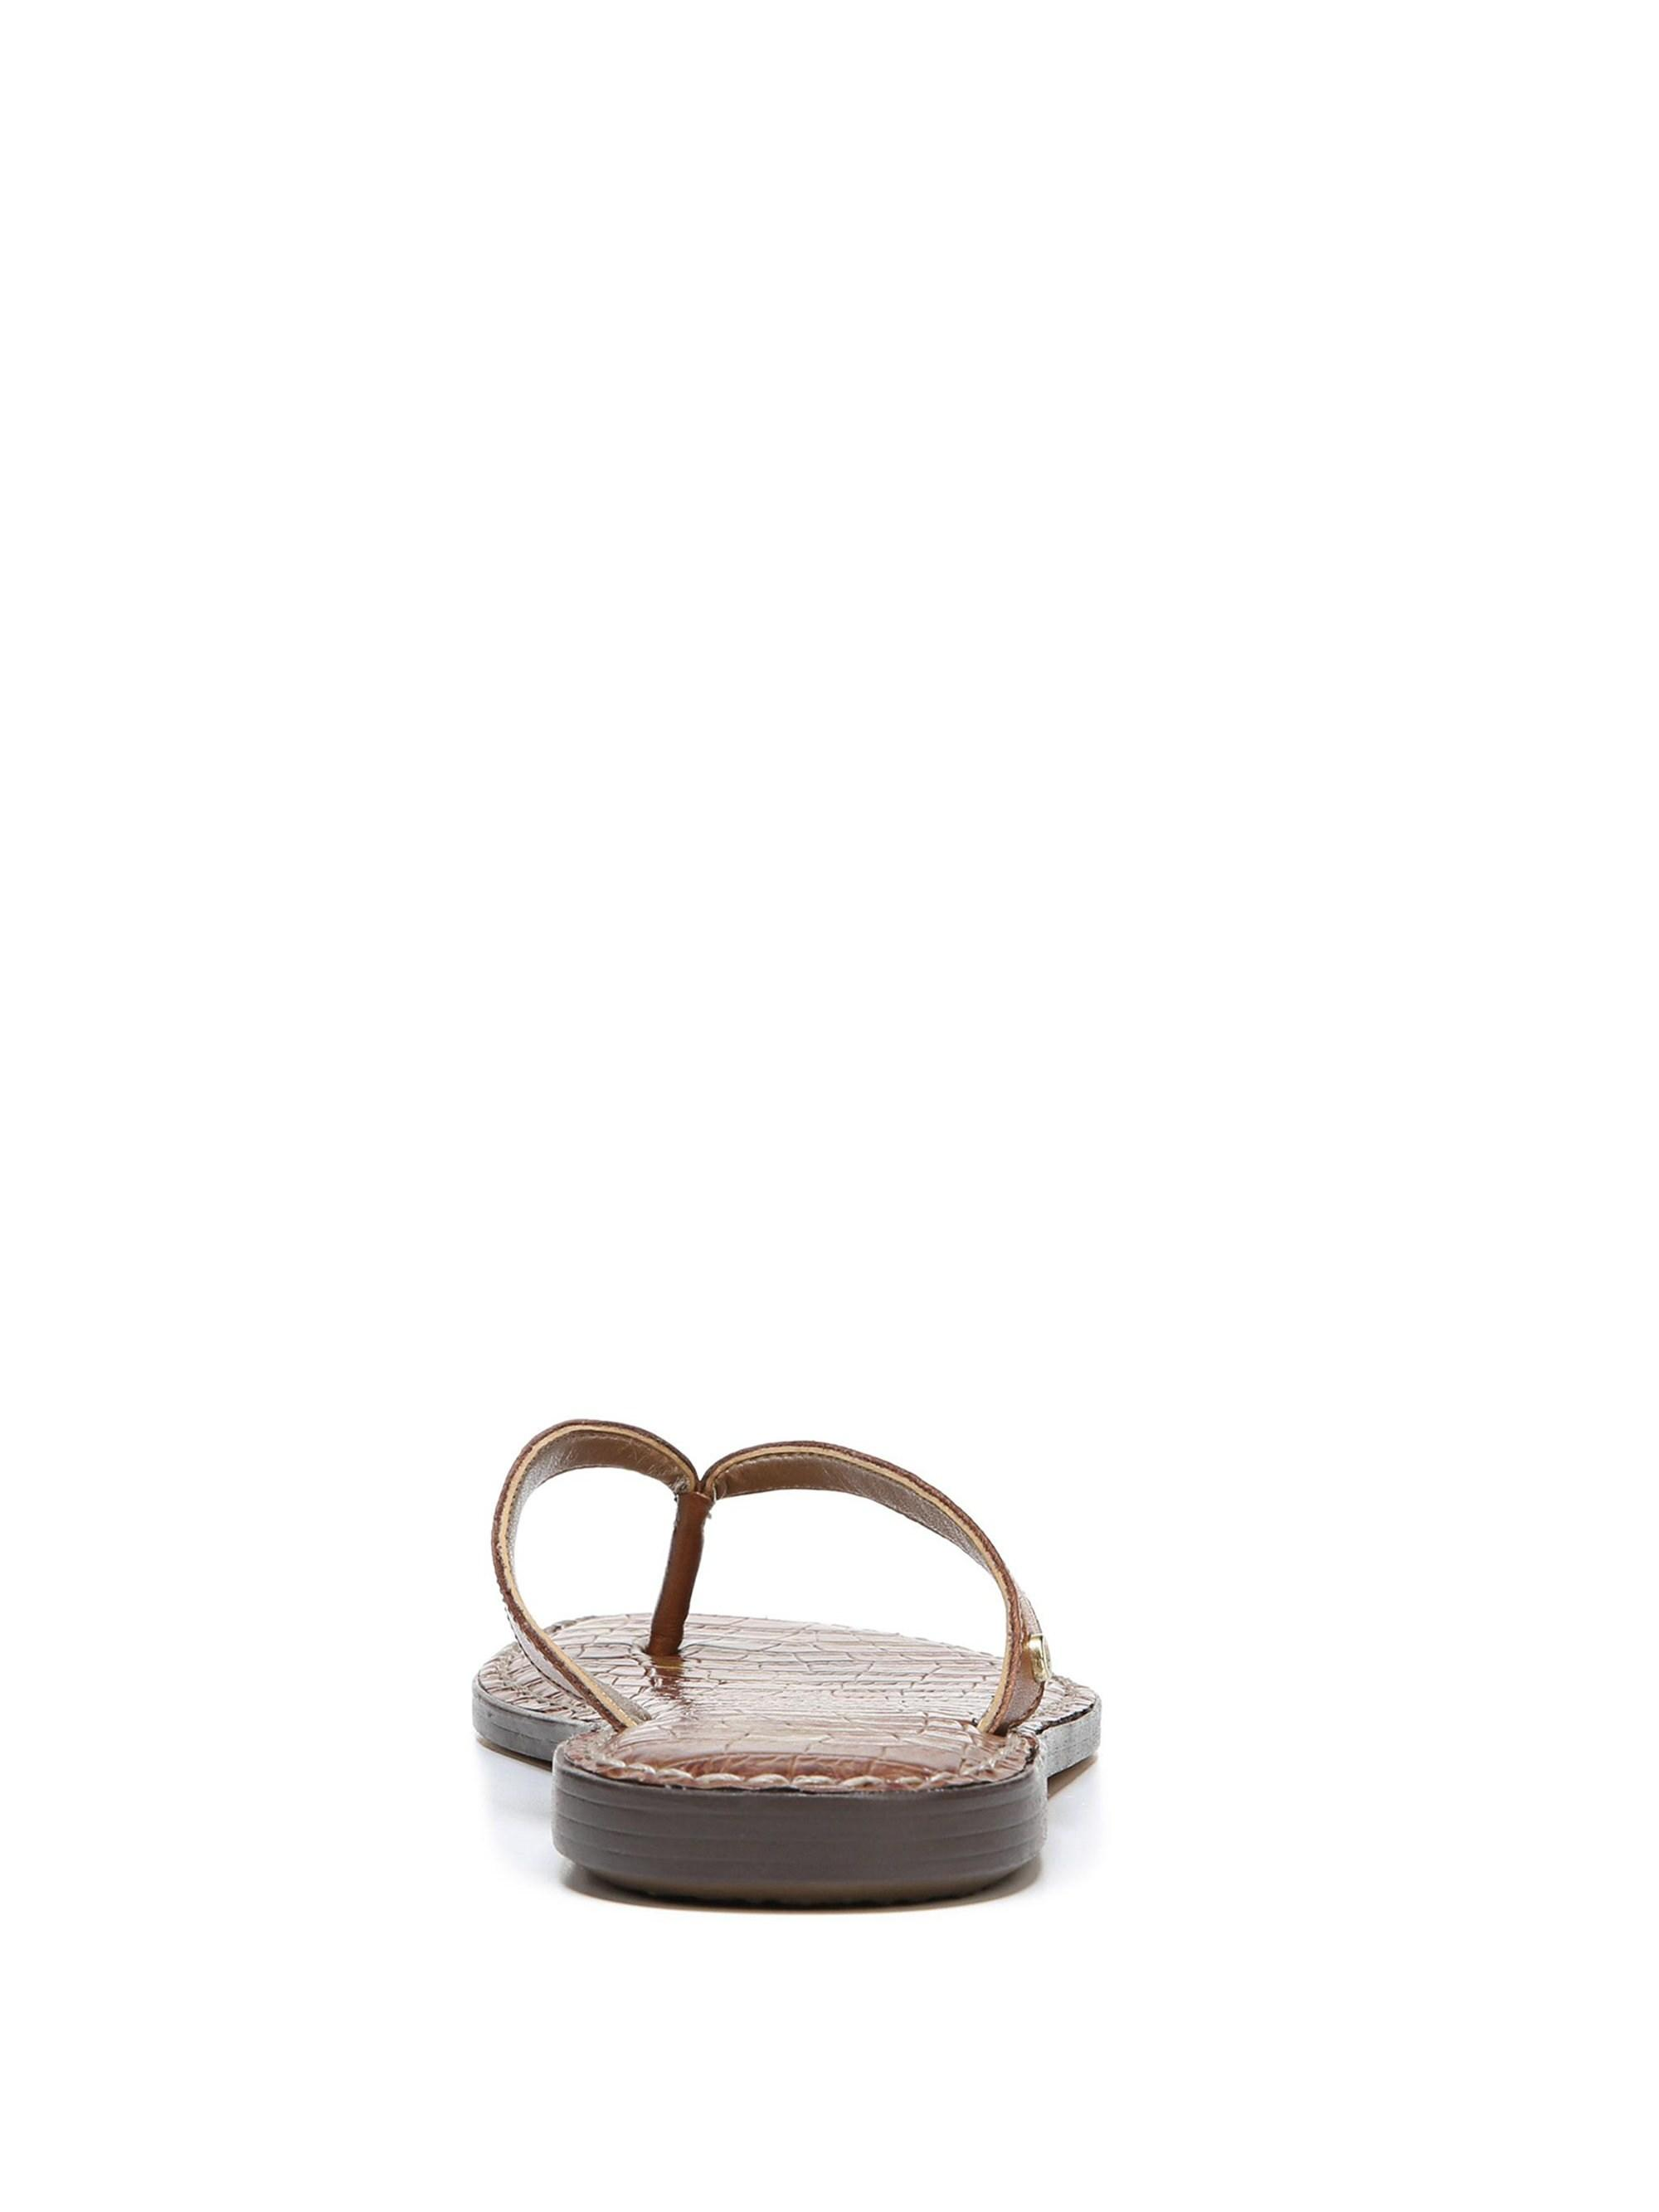 98270fca4df4c Gallery. Previously sold at  Saks Fifth Avenue · Women s Gladiator Sandals  Women s Jeweled Flat Sandals Women s Sam Edelman ...